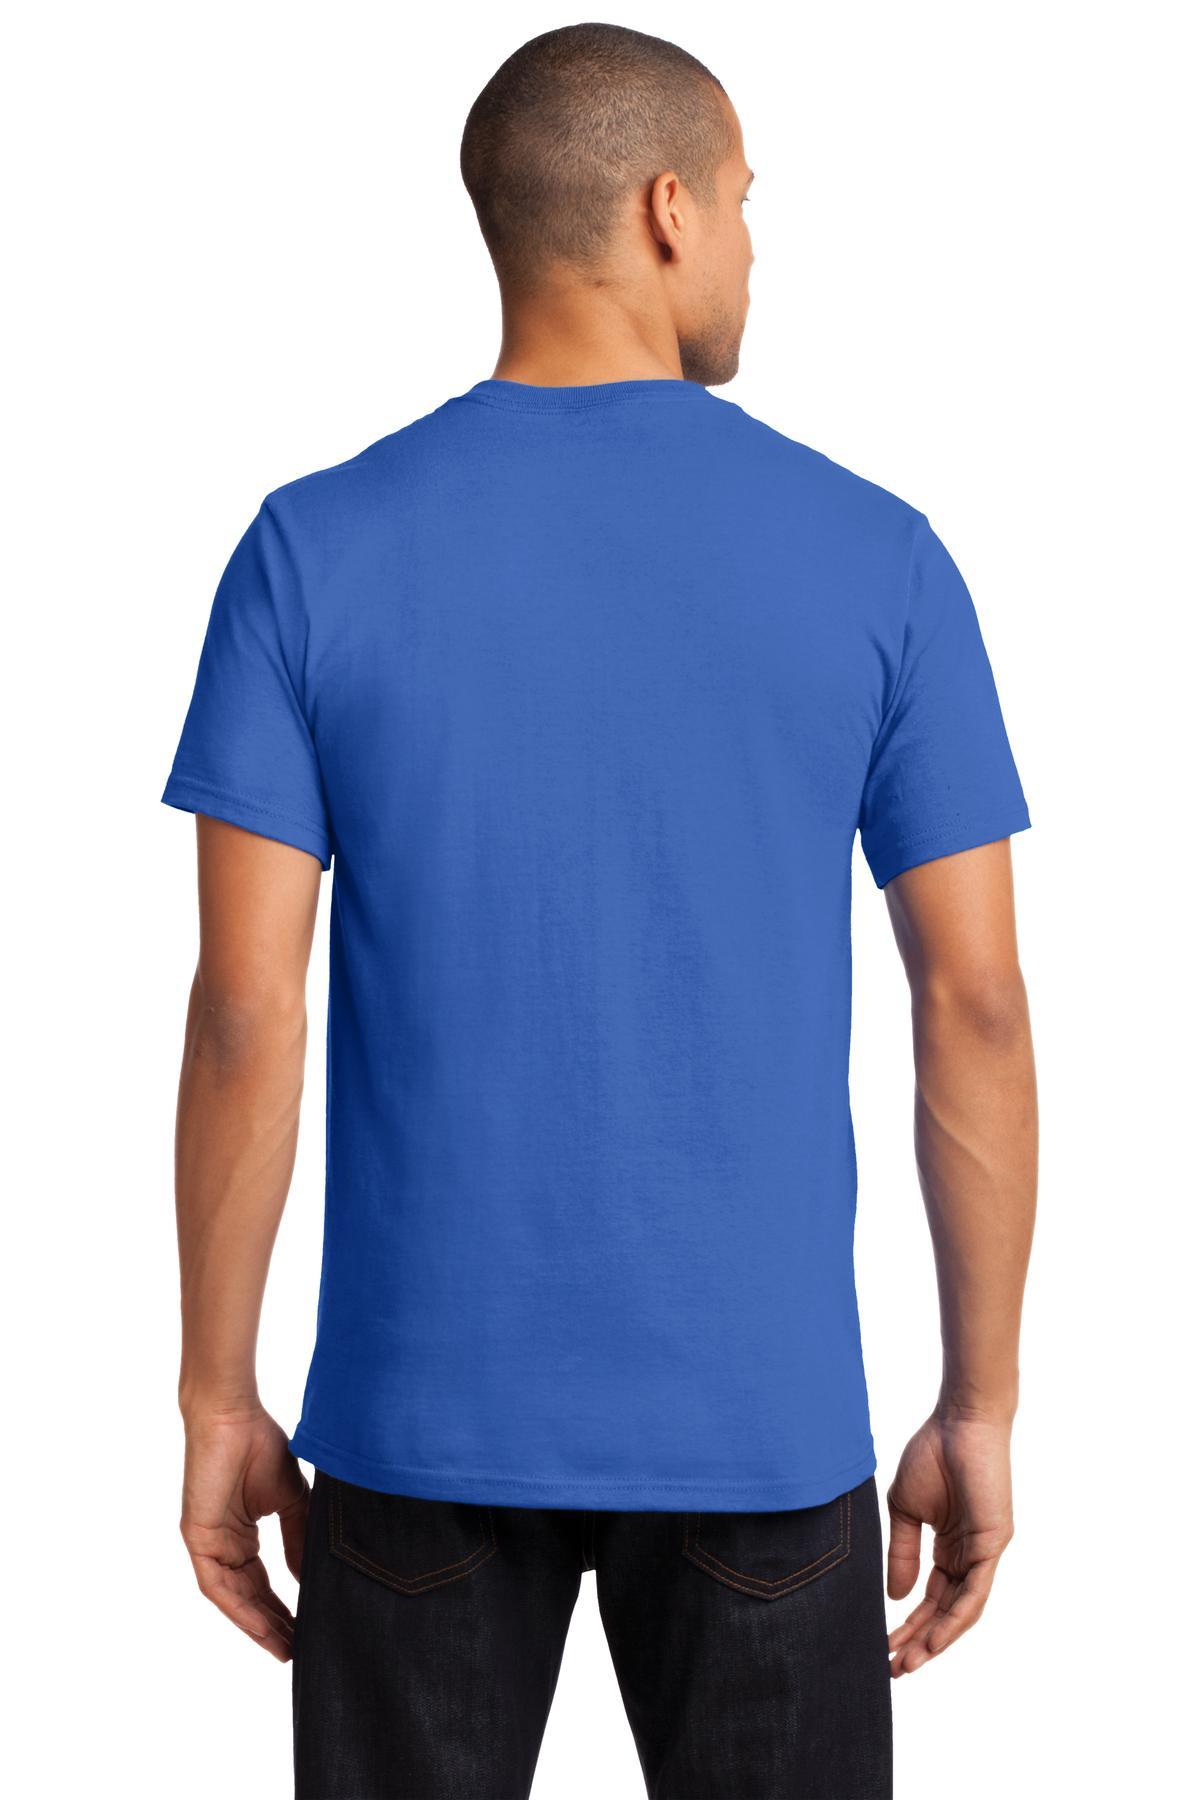 Port-amp-Company-Tall-Essential-TShirt-with-Pocket-PC61PT-Size-LT-4XLT thumbnail 32